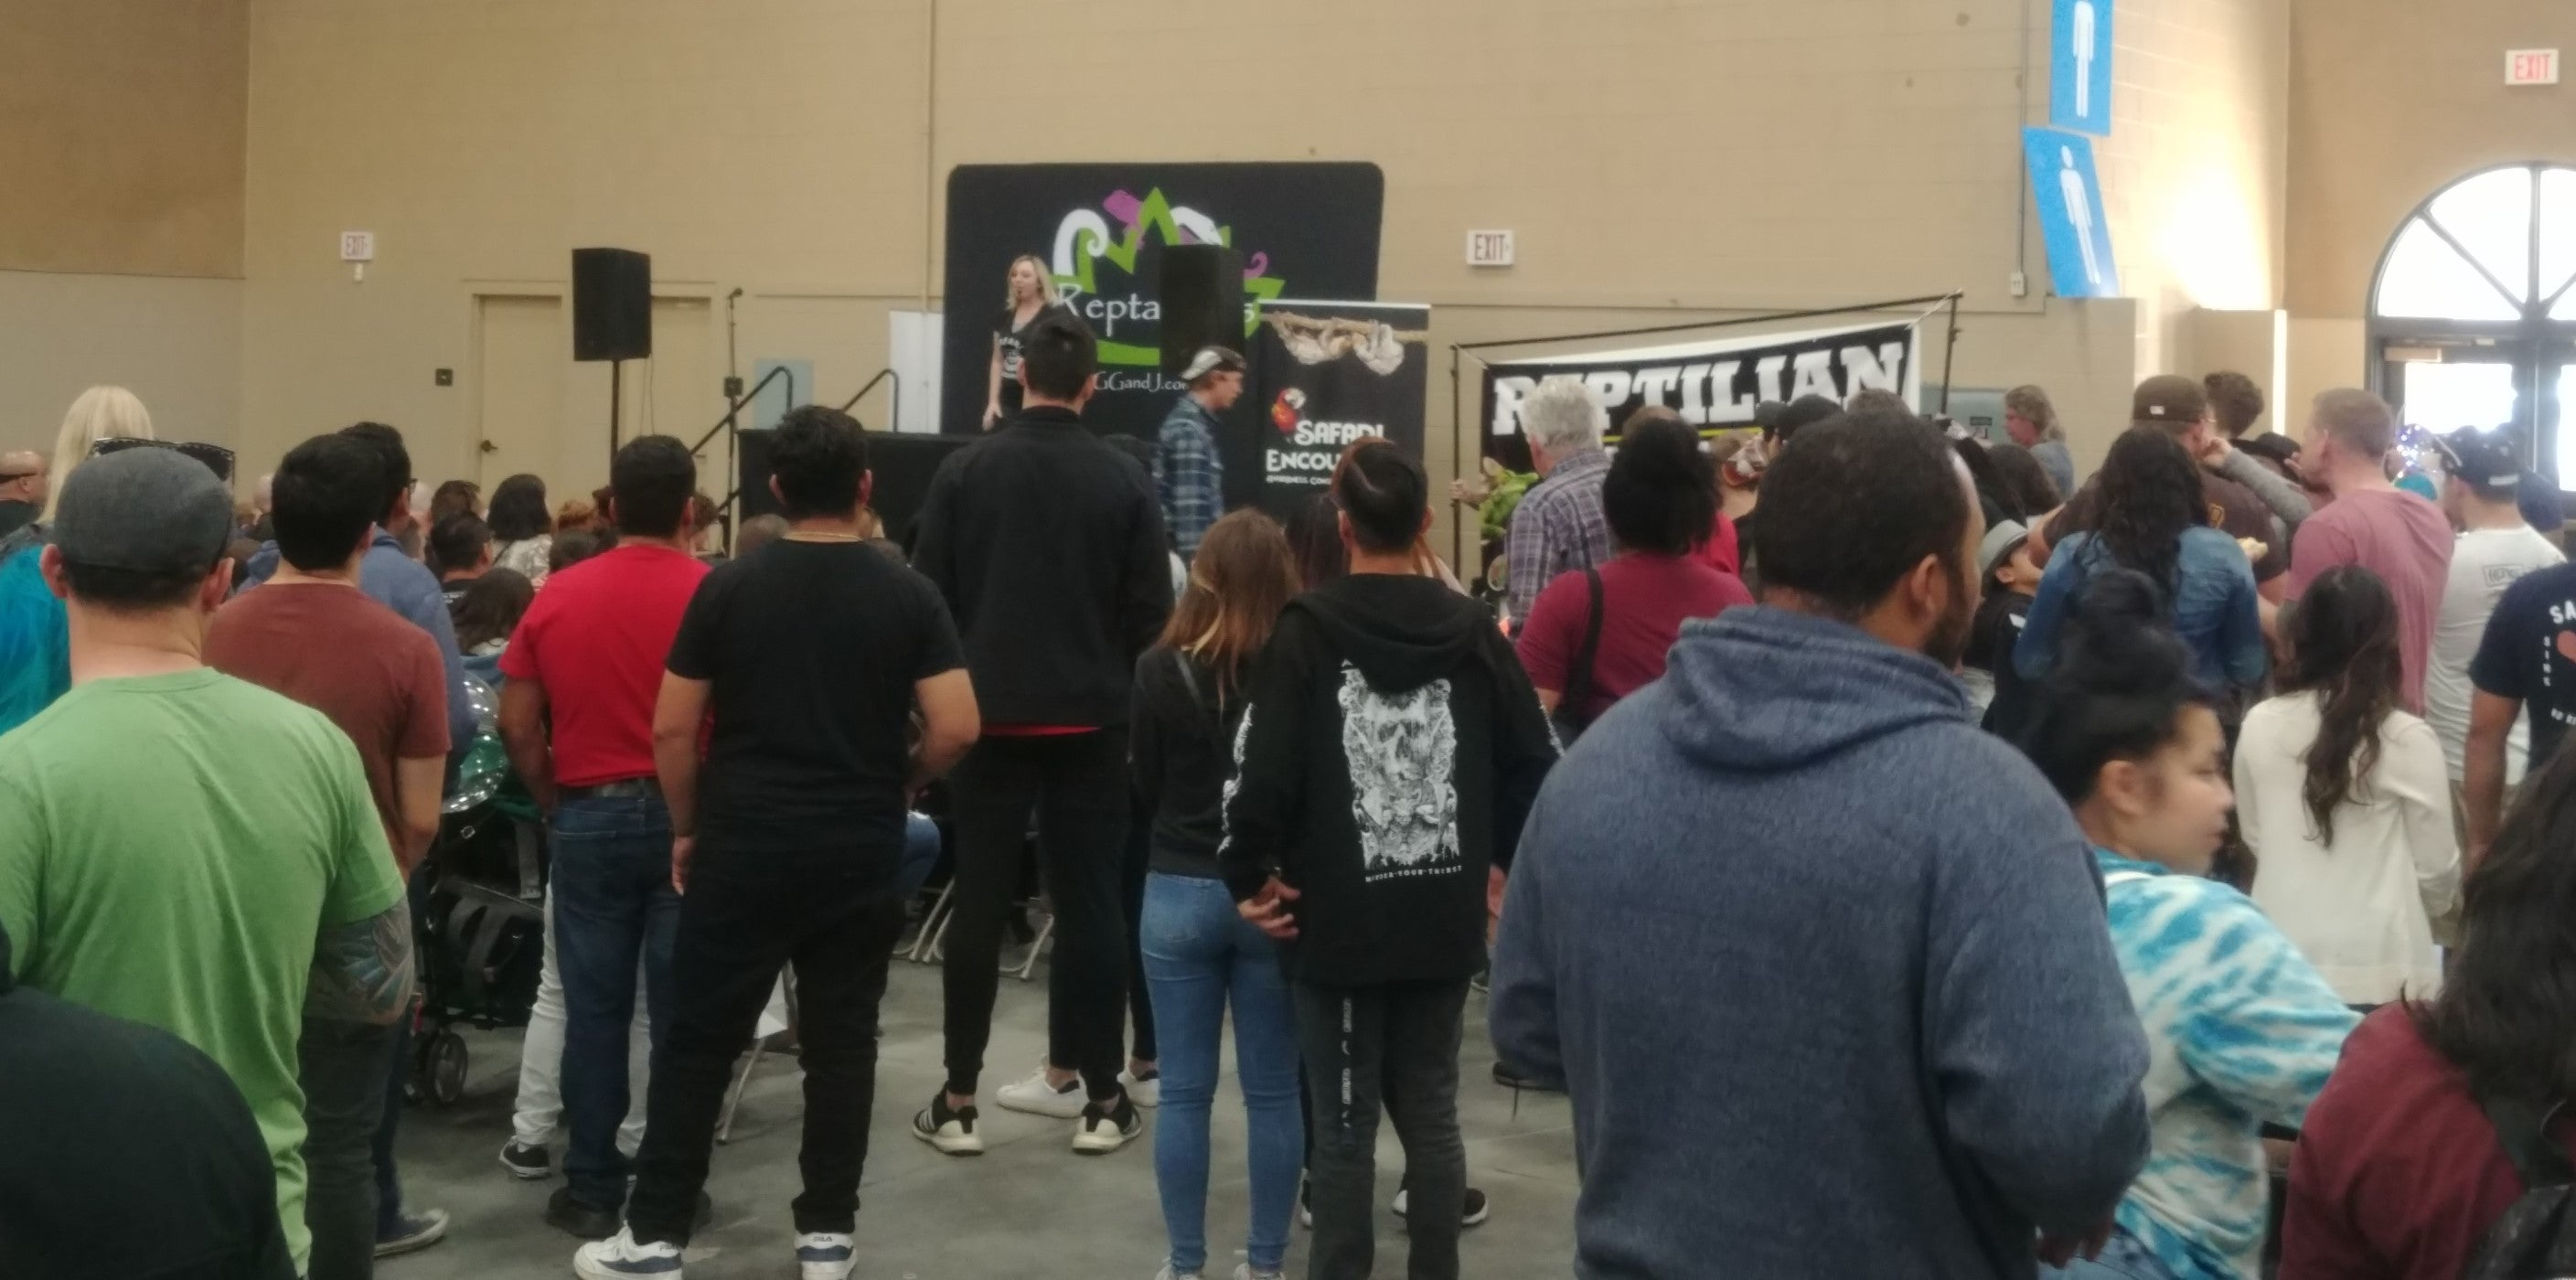 Reptilian Nation Expo Del Mar Reptanicals Brandi Blue Safari Encounters